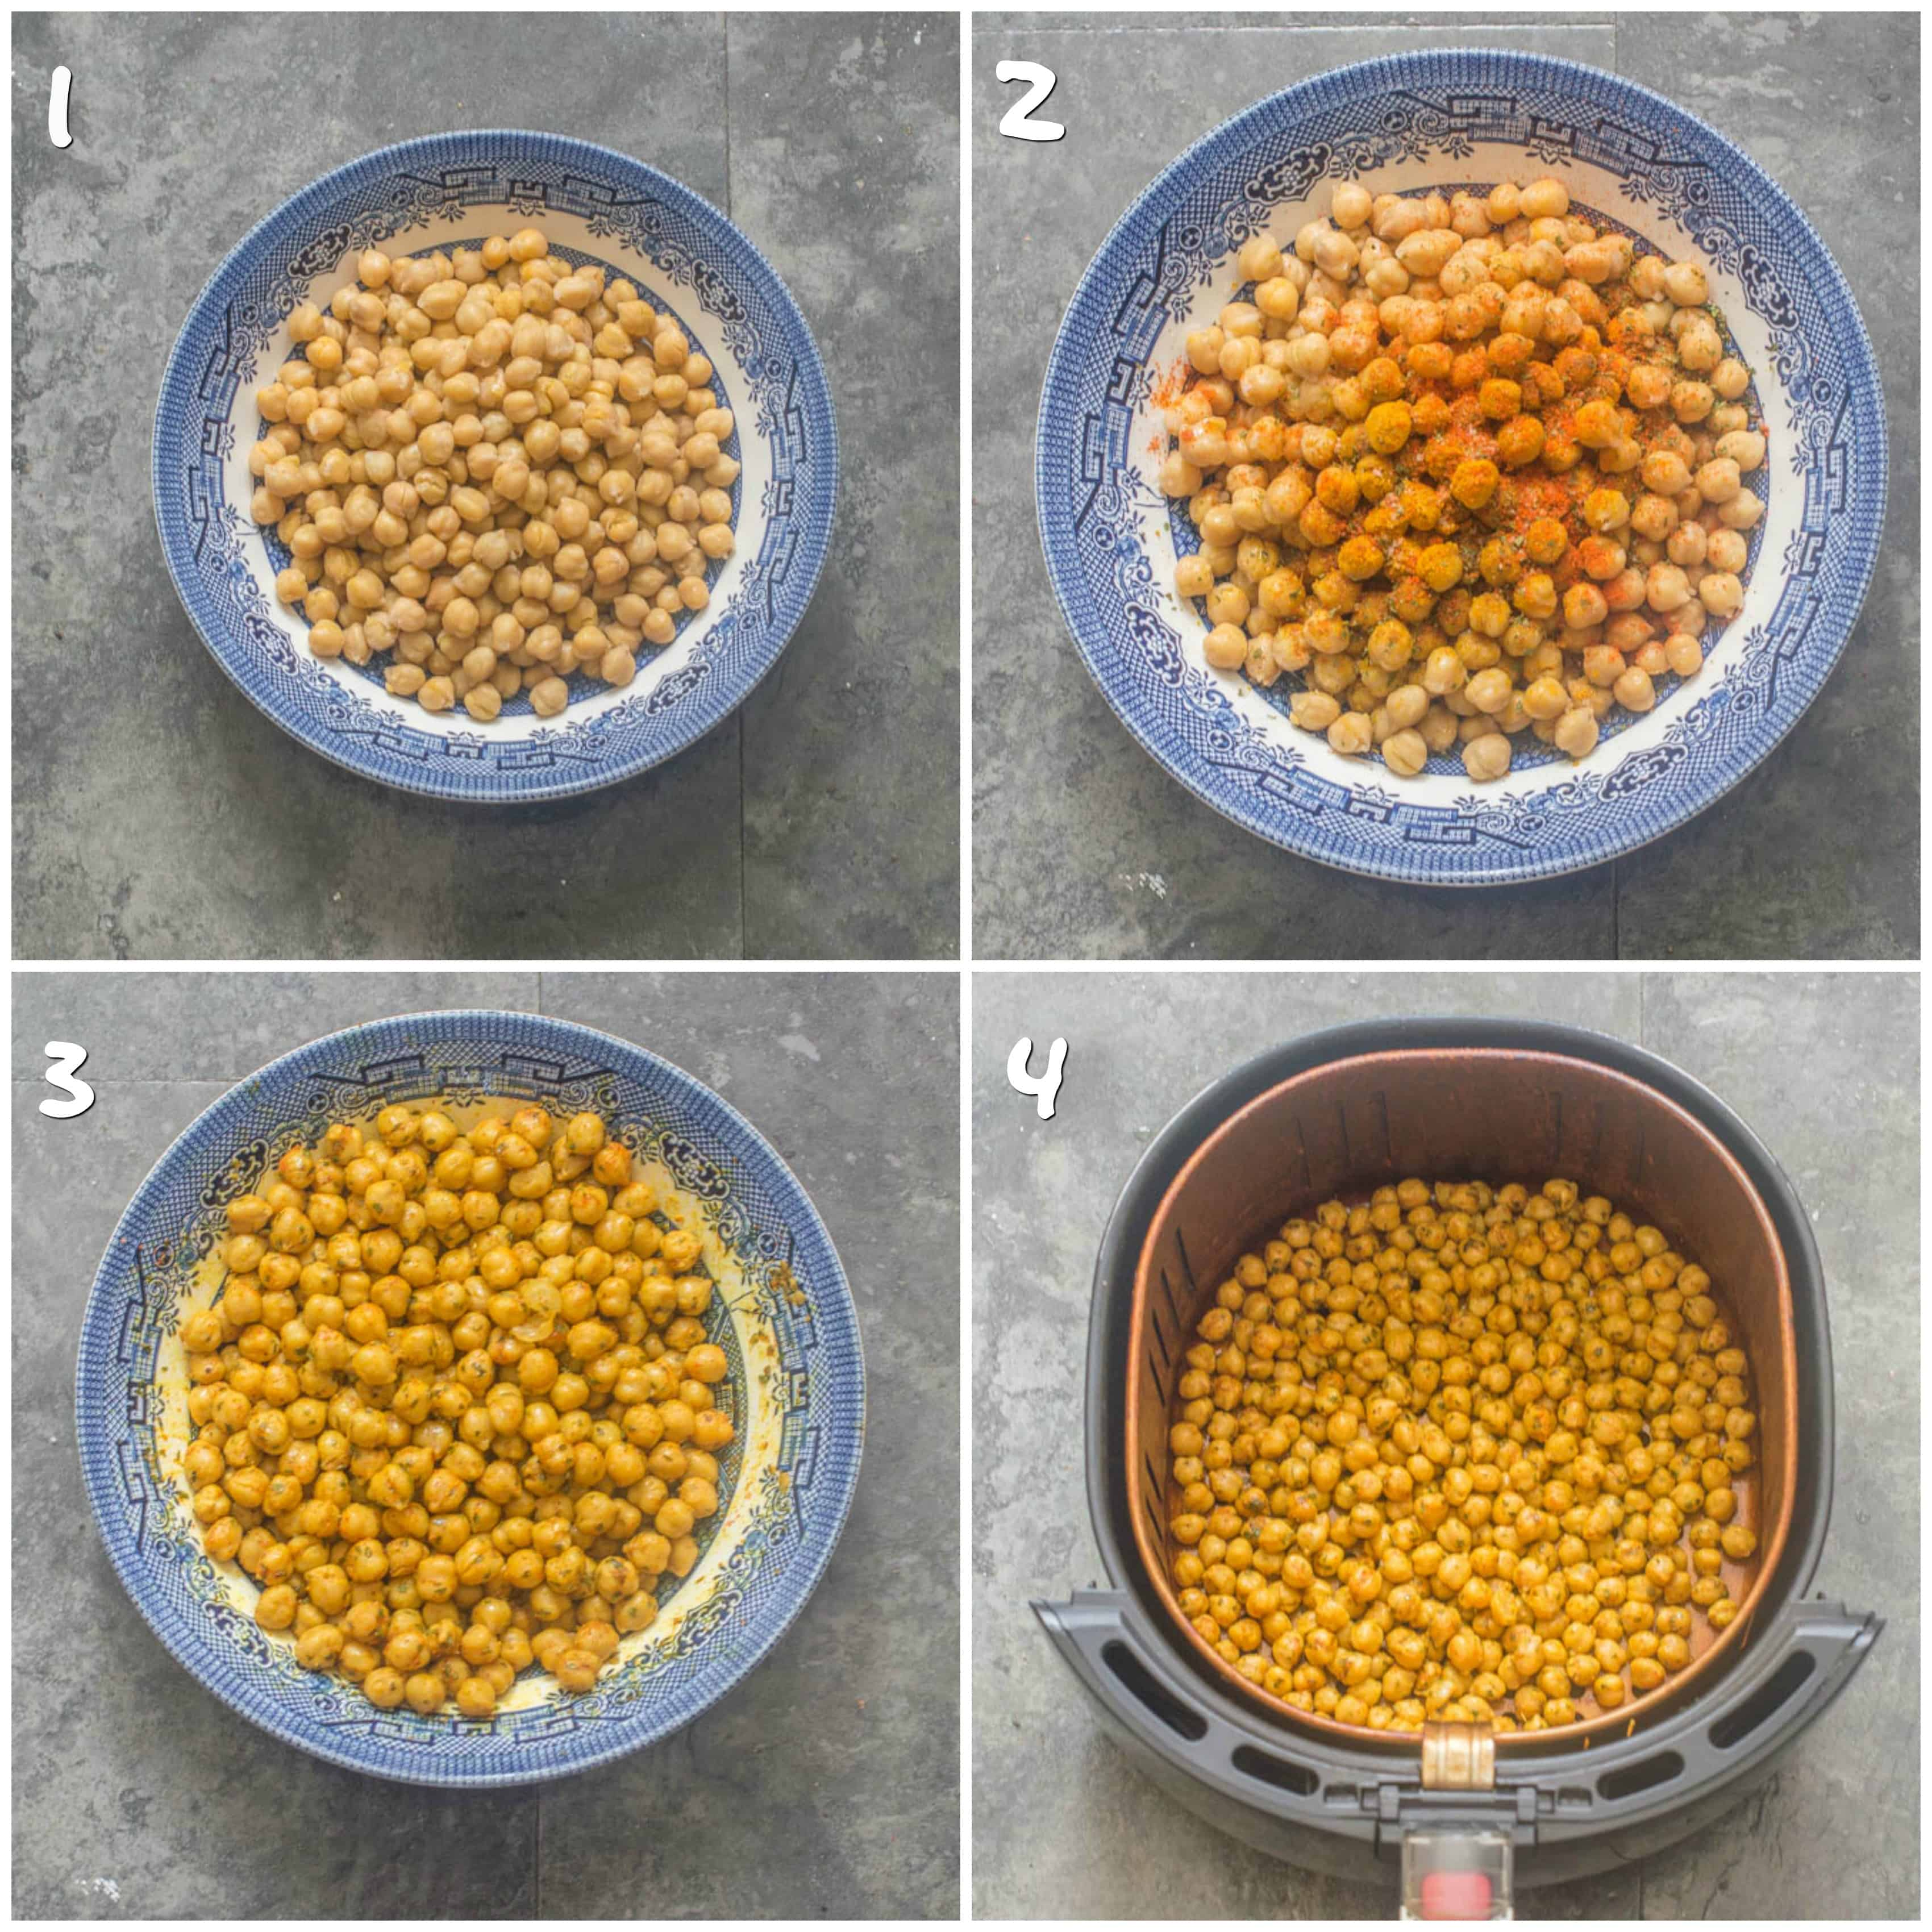 Curried air fryer chickpeas steps 1-4